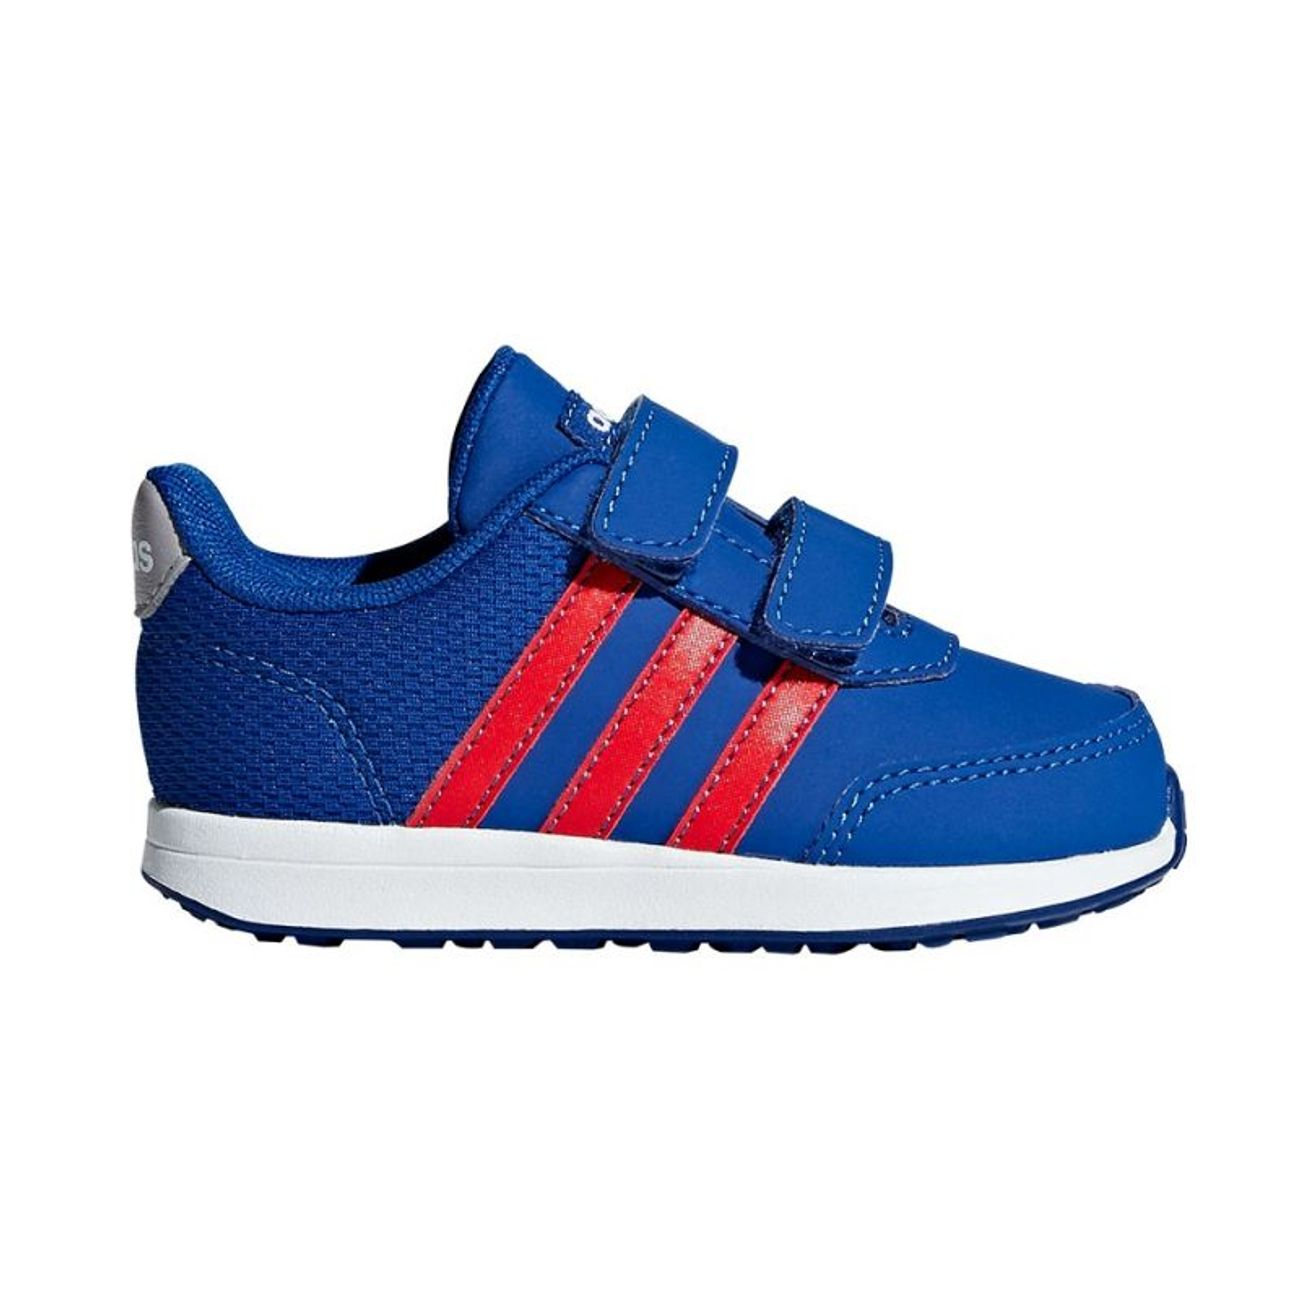 Bleu F35705 Rouge Vs Cmf Adulte Switch Padel Adidas 2 Bebe OPiXZukT